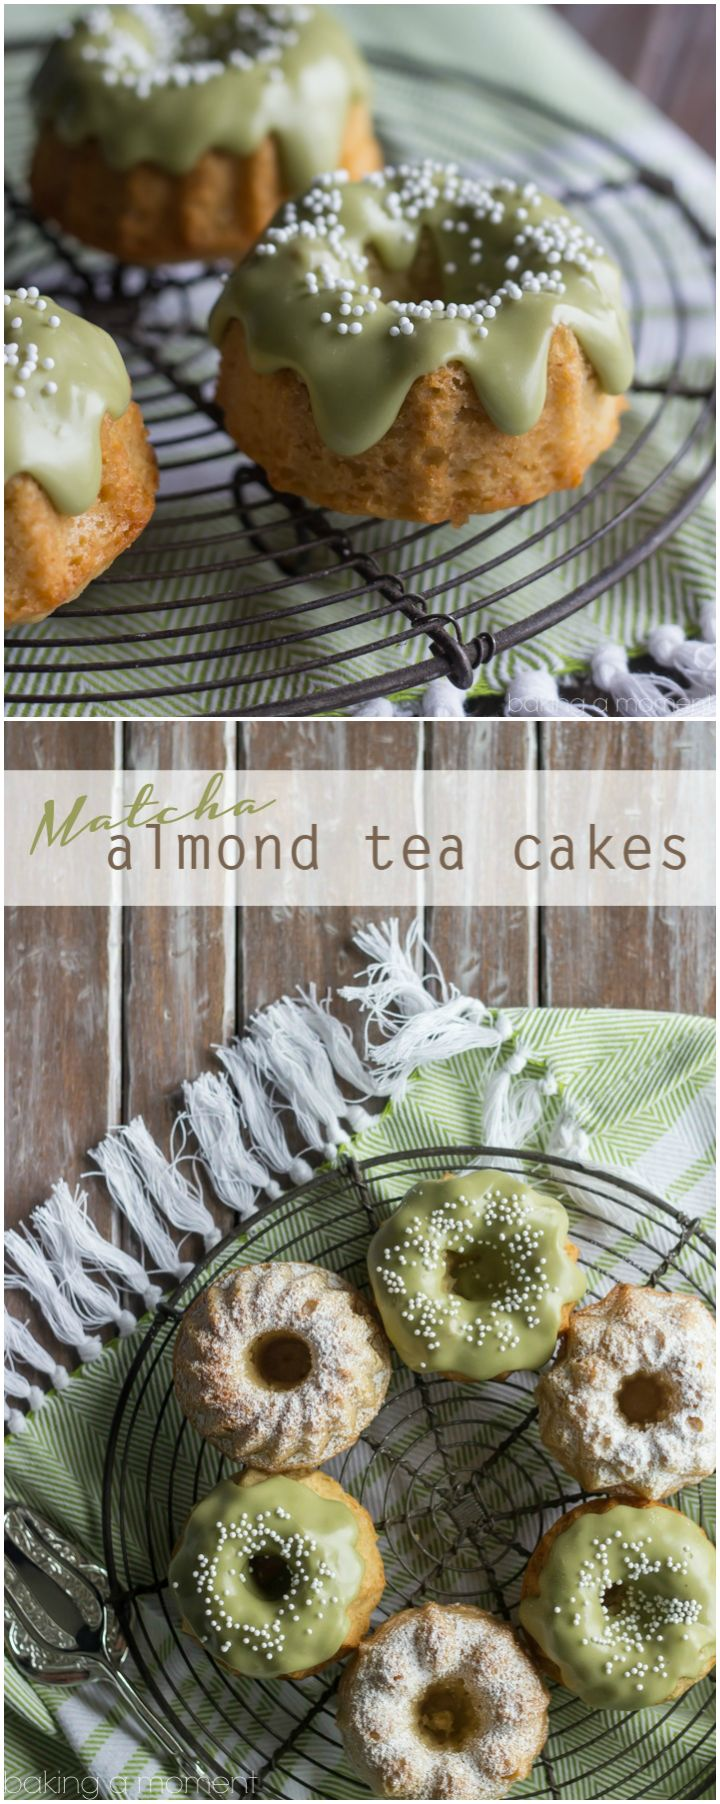 These almond tea cakes came together in a snap, with healthier ingredients like almonds, coconut oil, and einkorn flour. The matcha glaze on top is perfection!